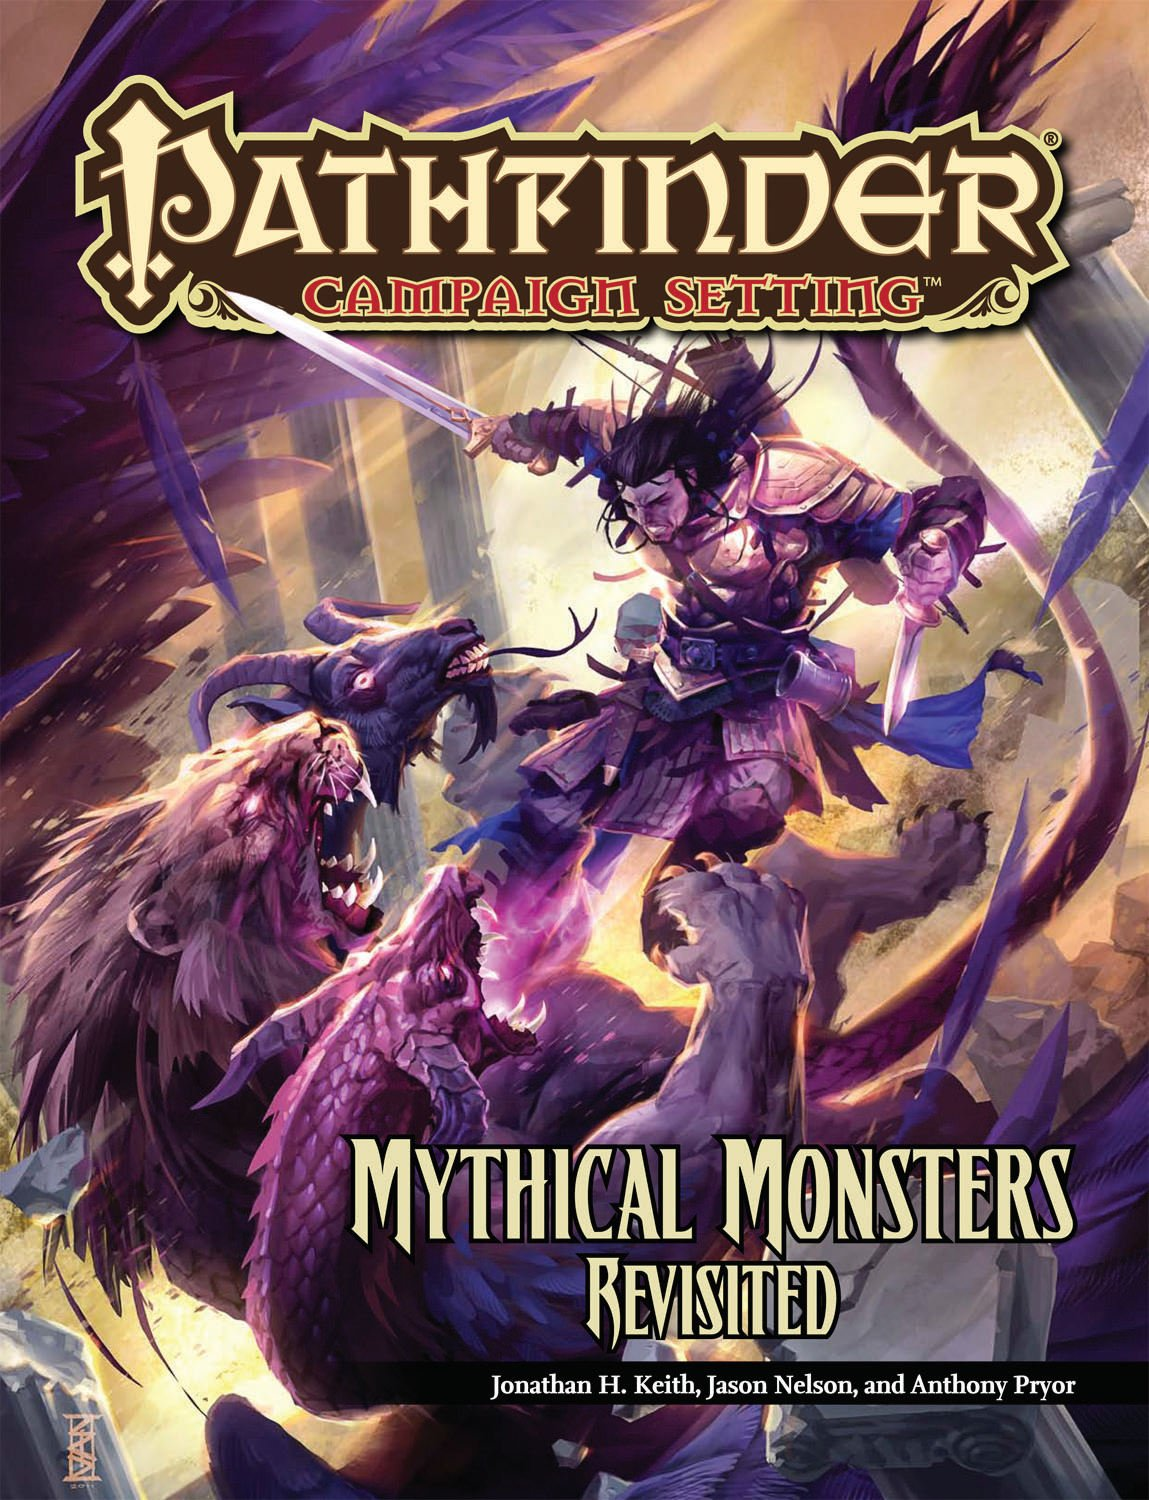 Pathfinder Campaign Setting Mythical Revisited product image